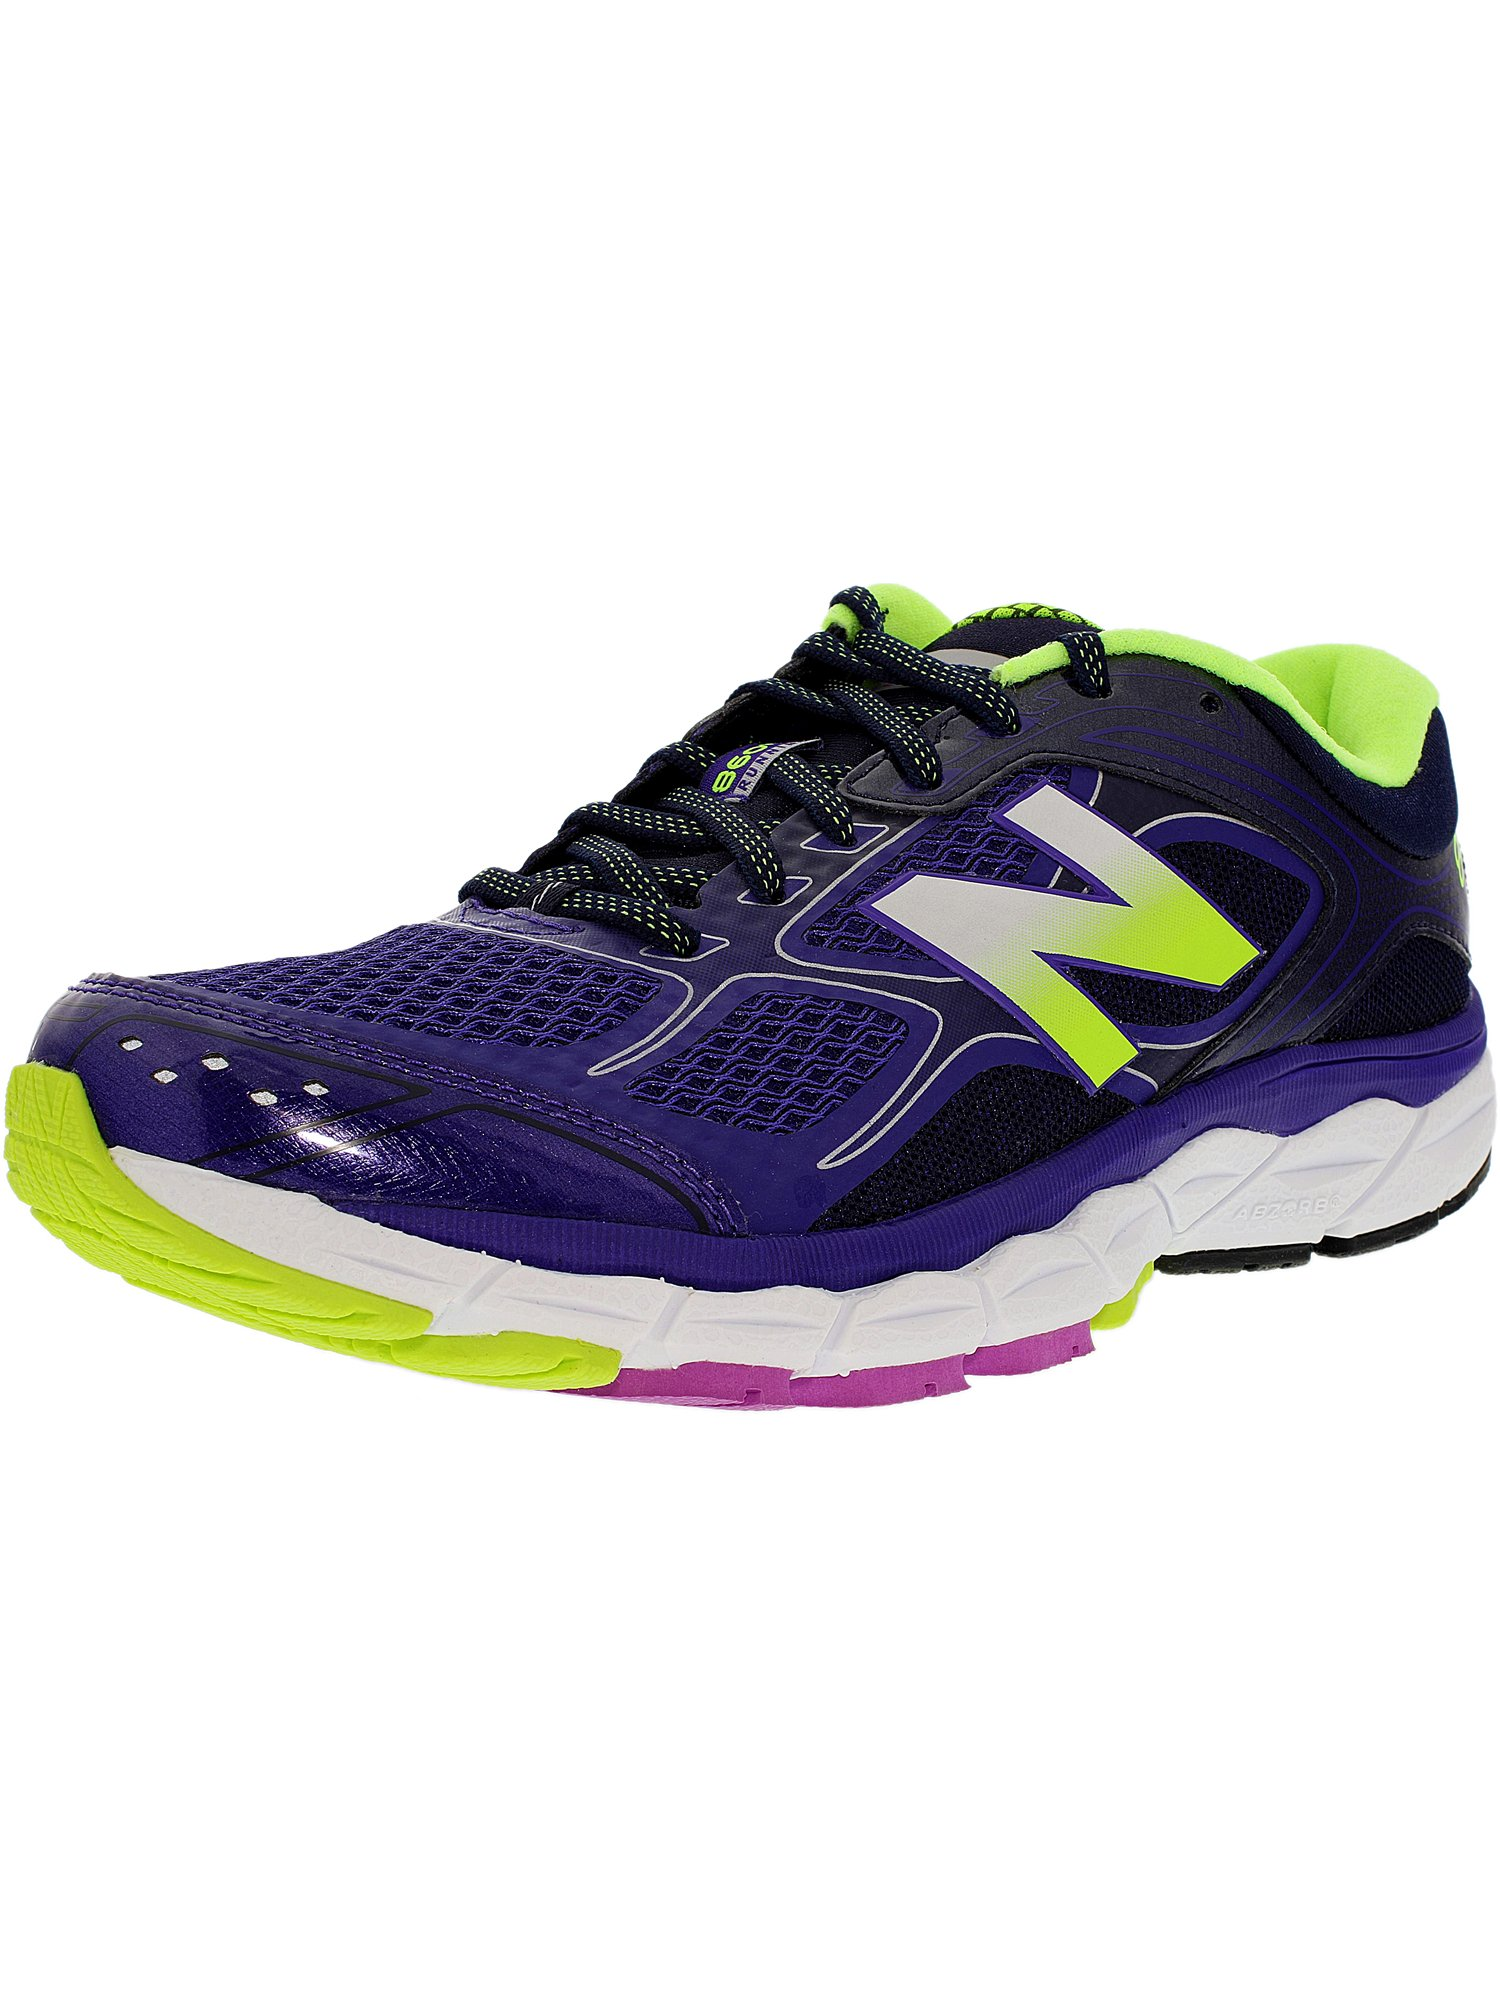 New Balance Women's W860 Bp6 Ankle-High Running Shoe 6N by New Balance